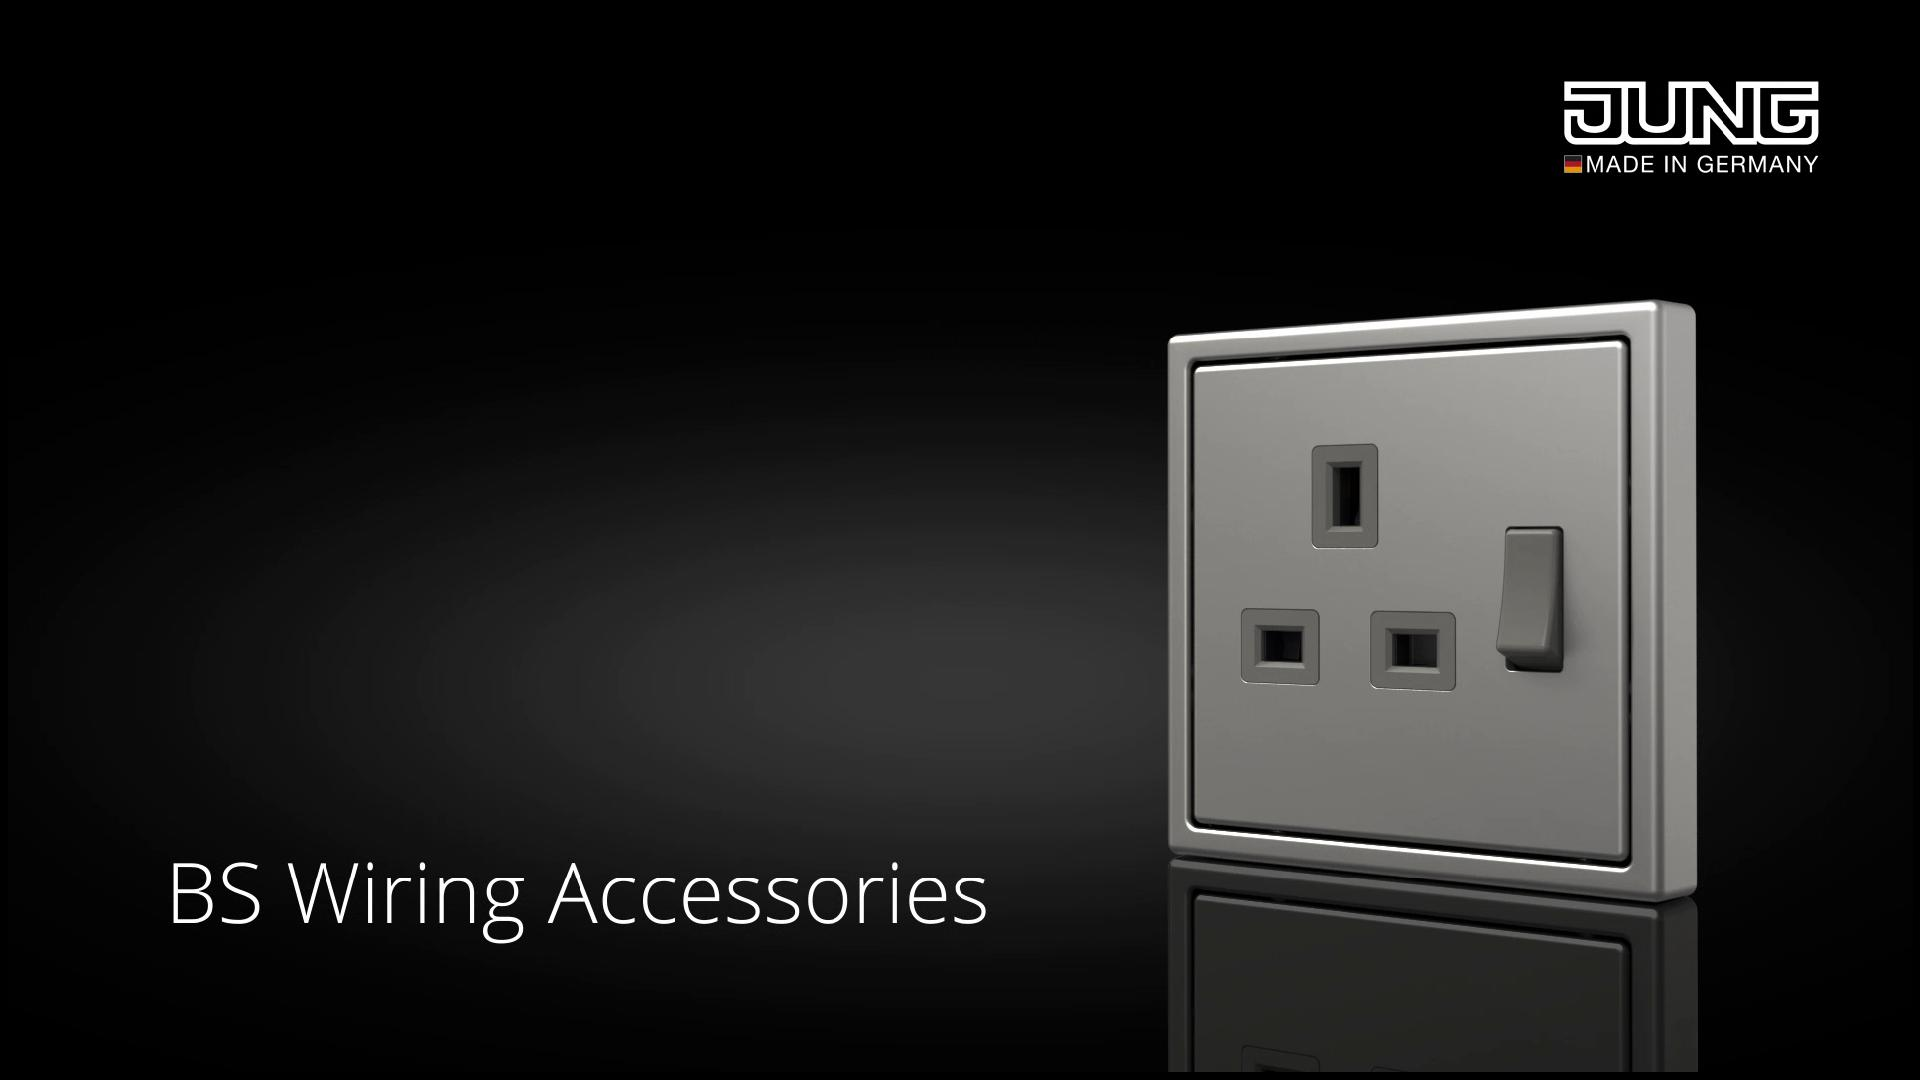 JUNG - BS Wiring Accessories Movies Media database